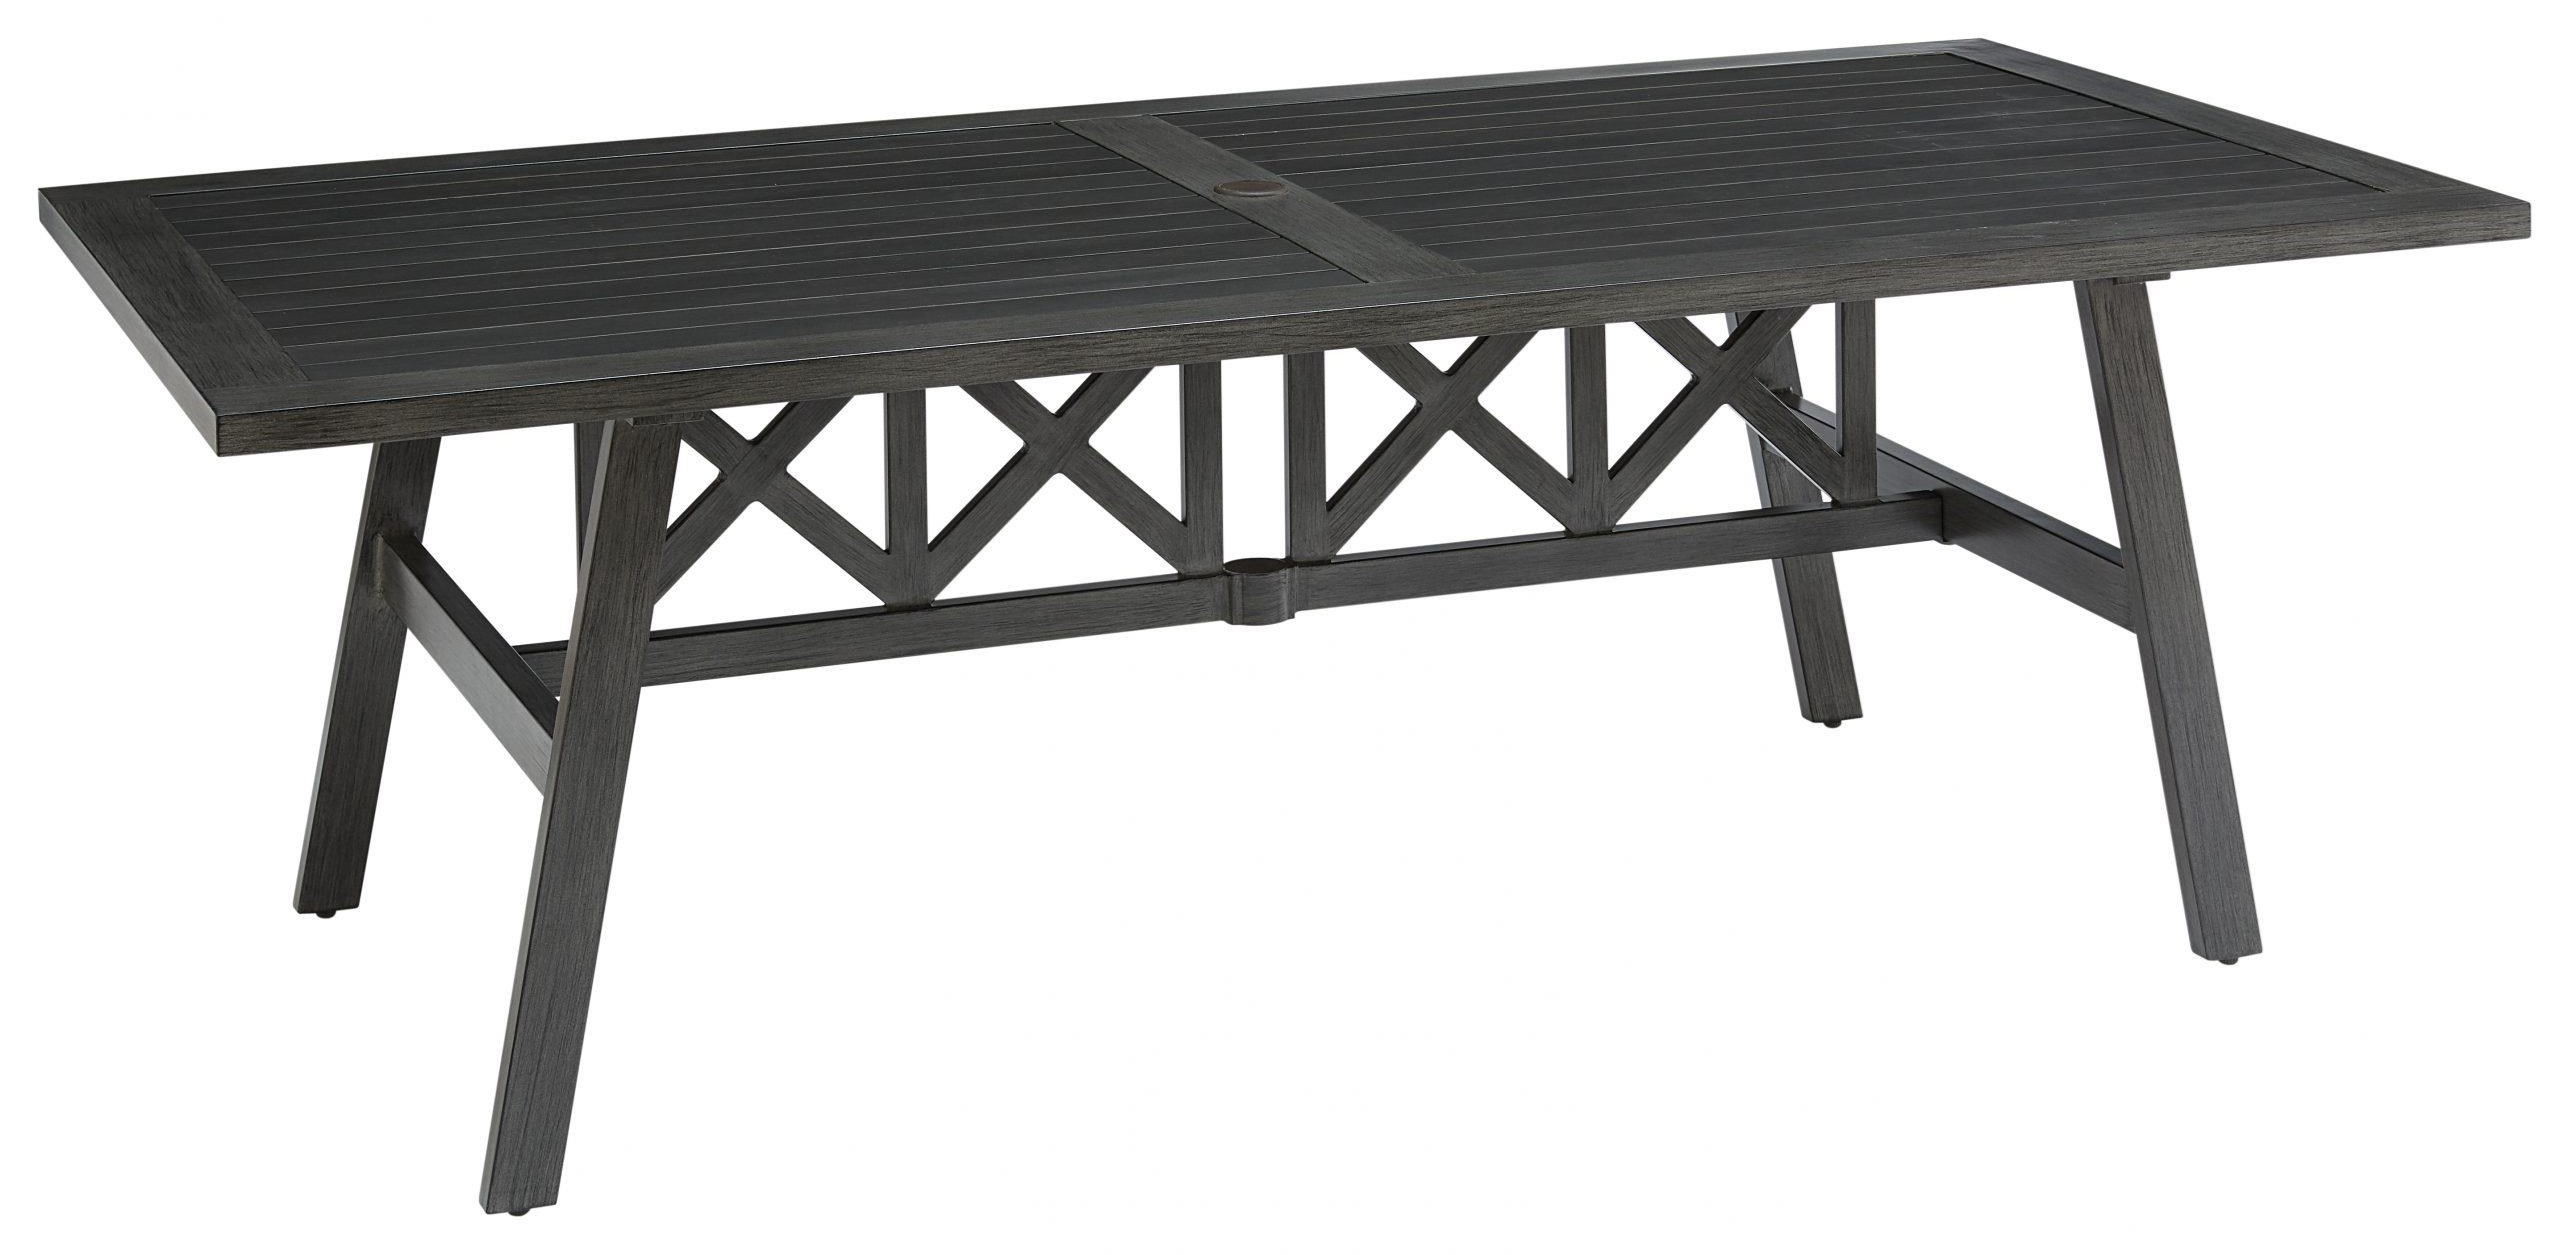 Adison Dining Table by Apricity Outdoor at Johnny Janosik